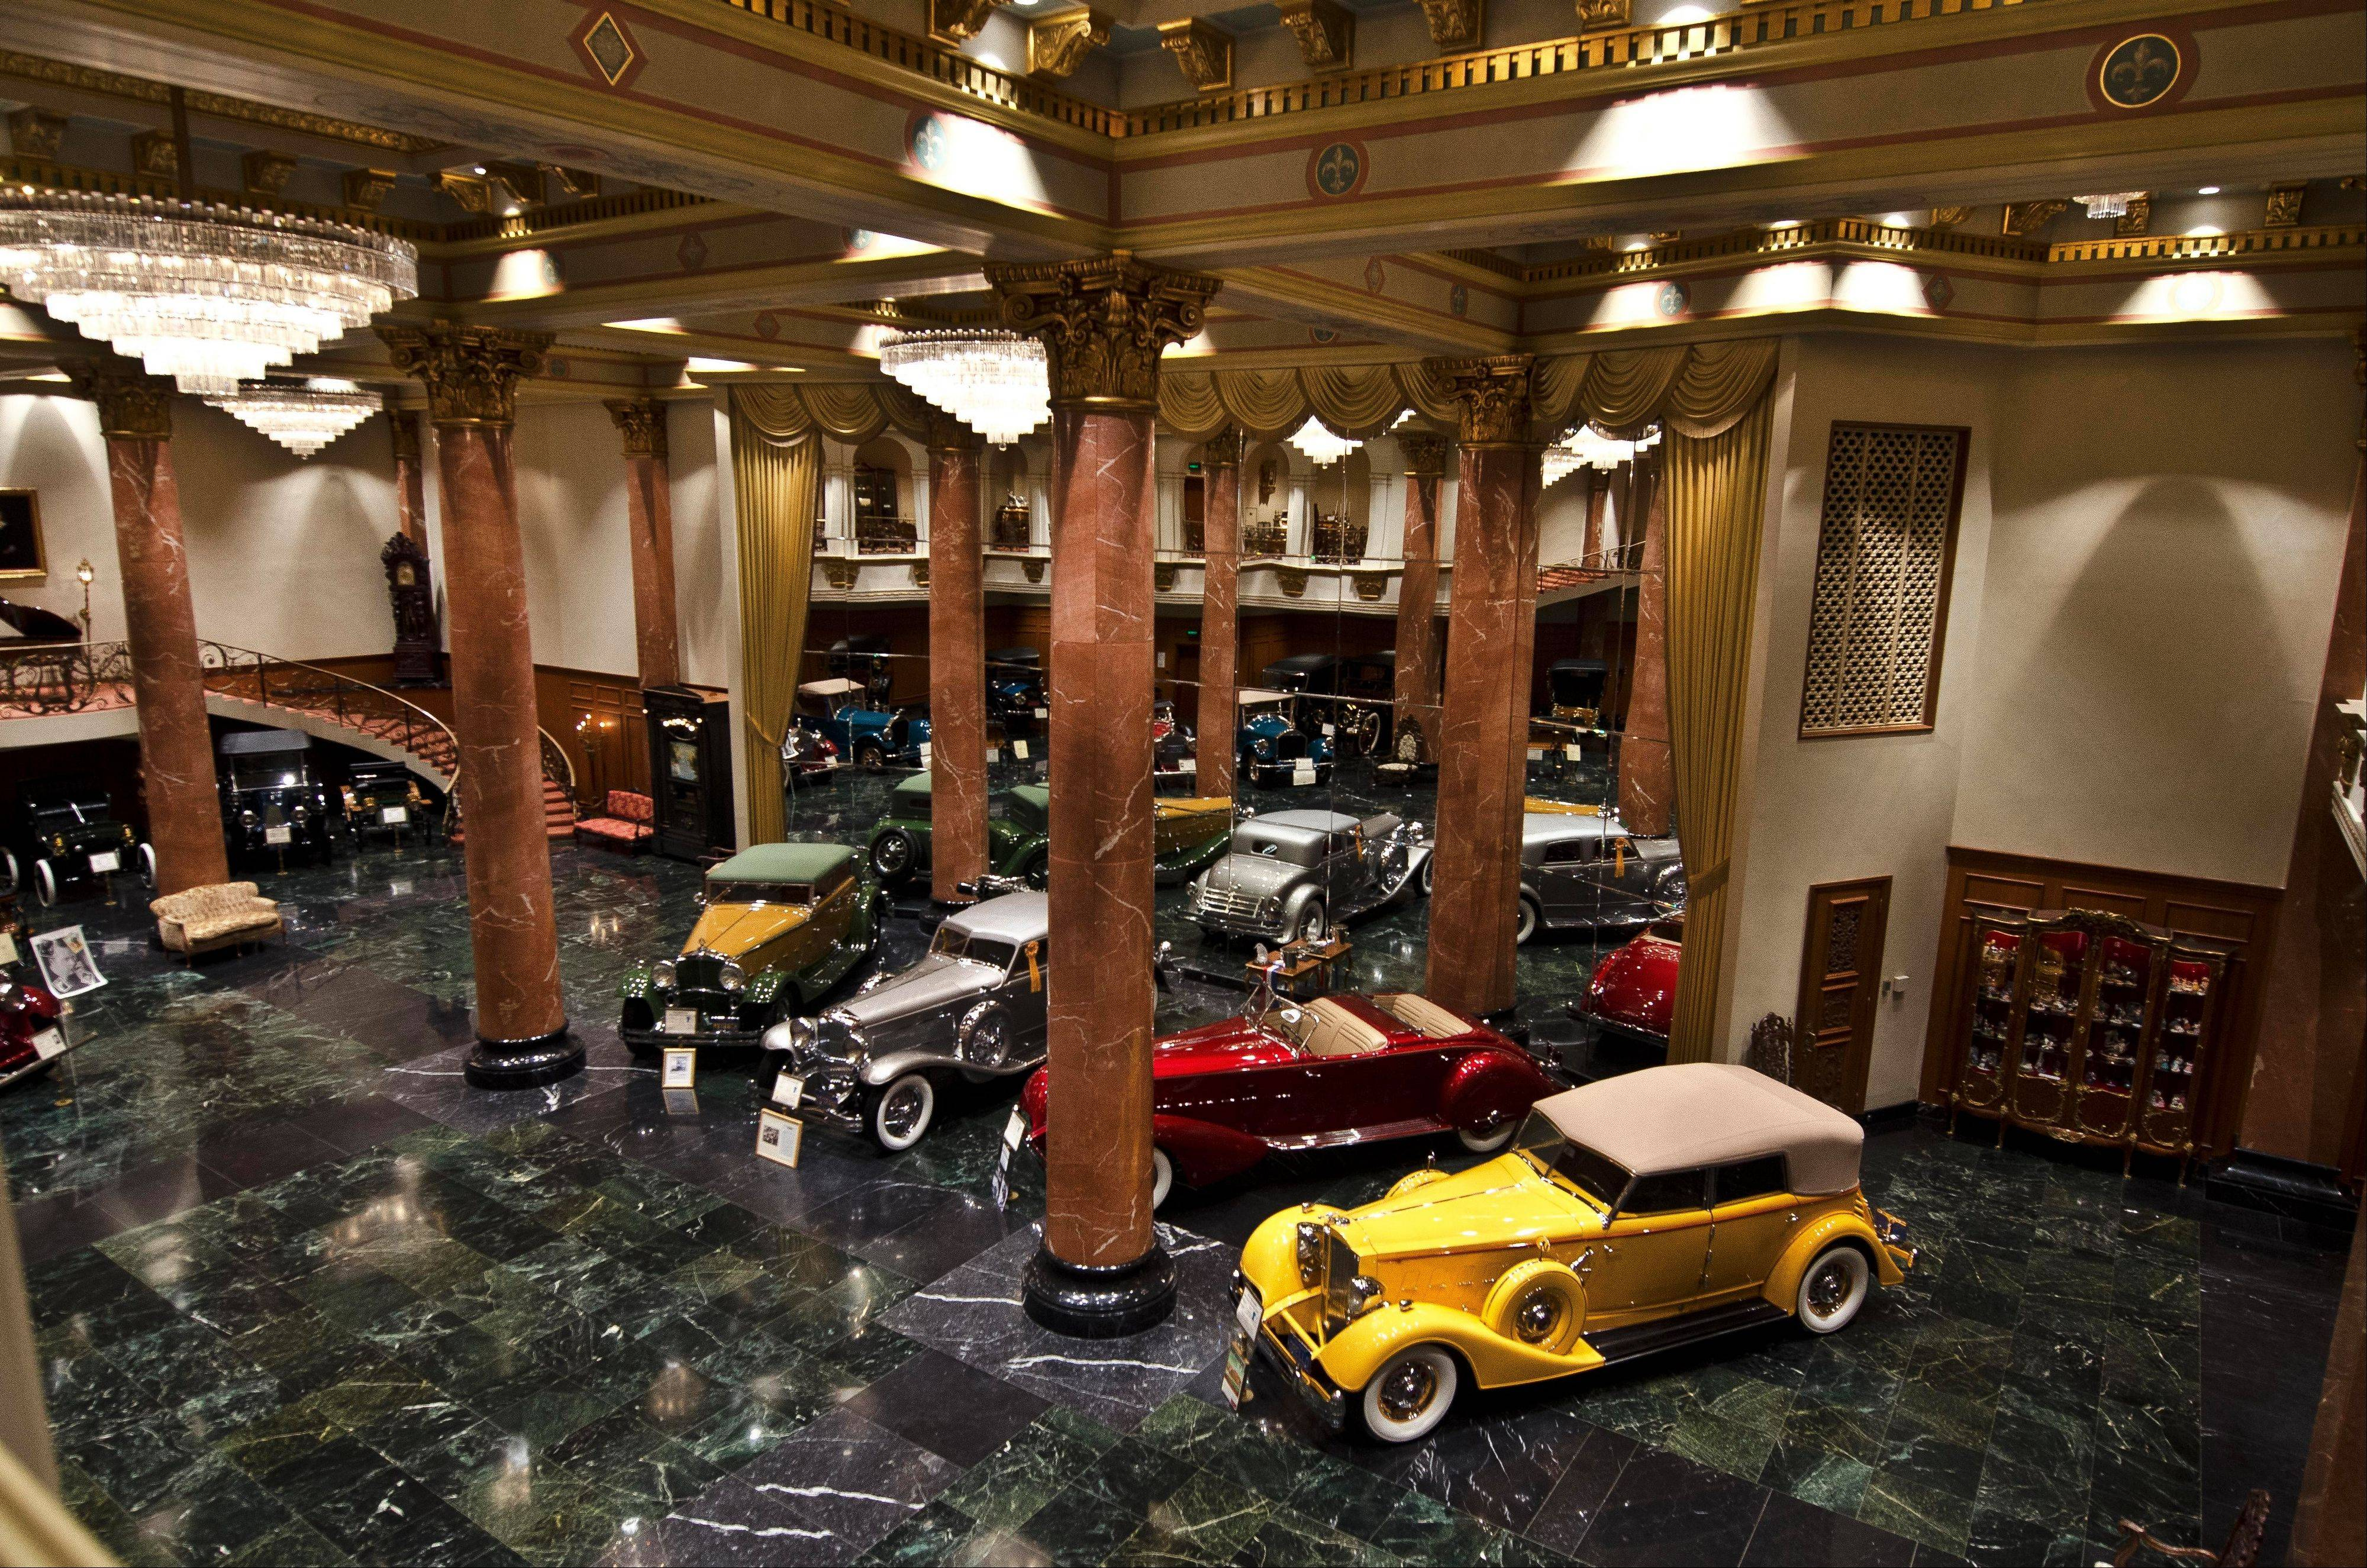 For a more exclusive look at automotive history, a tour of the Nethercutt Collection's Grand Salon is a must.